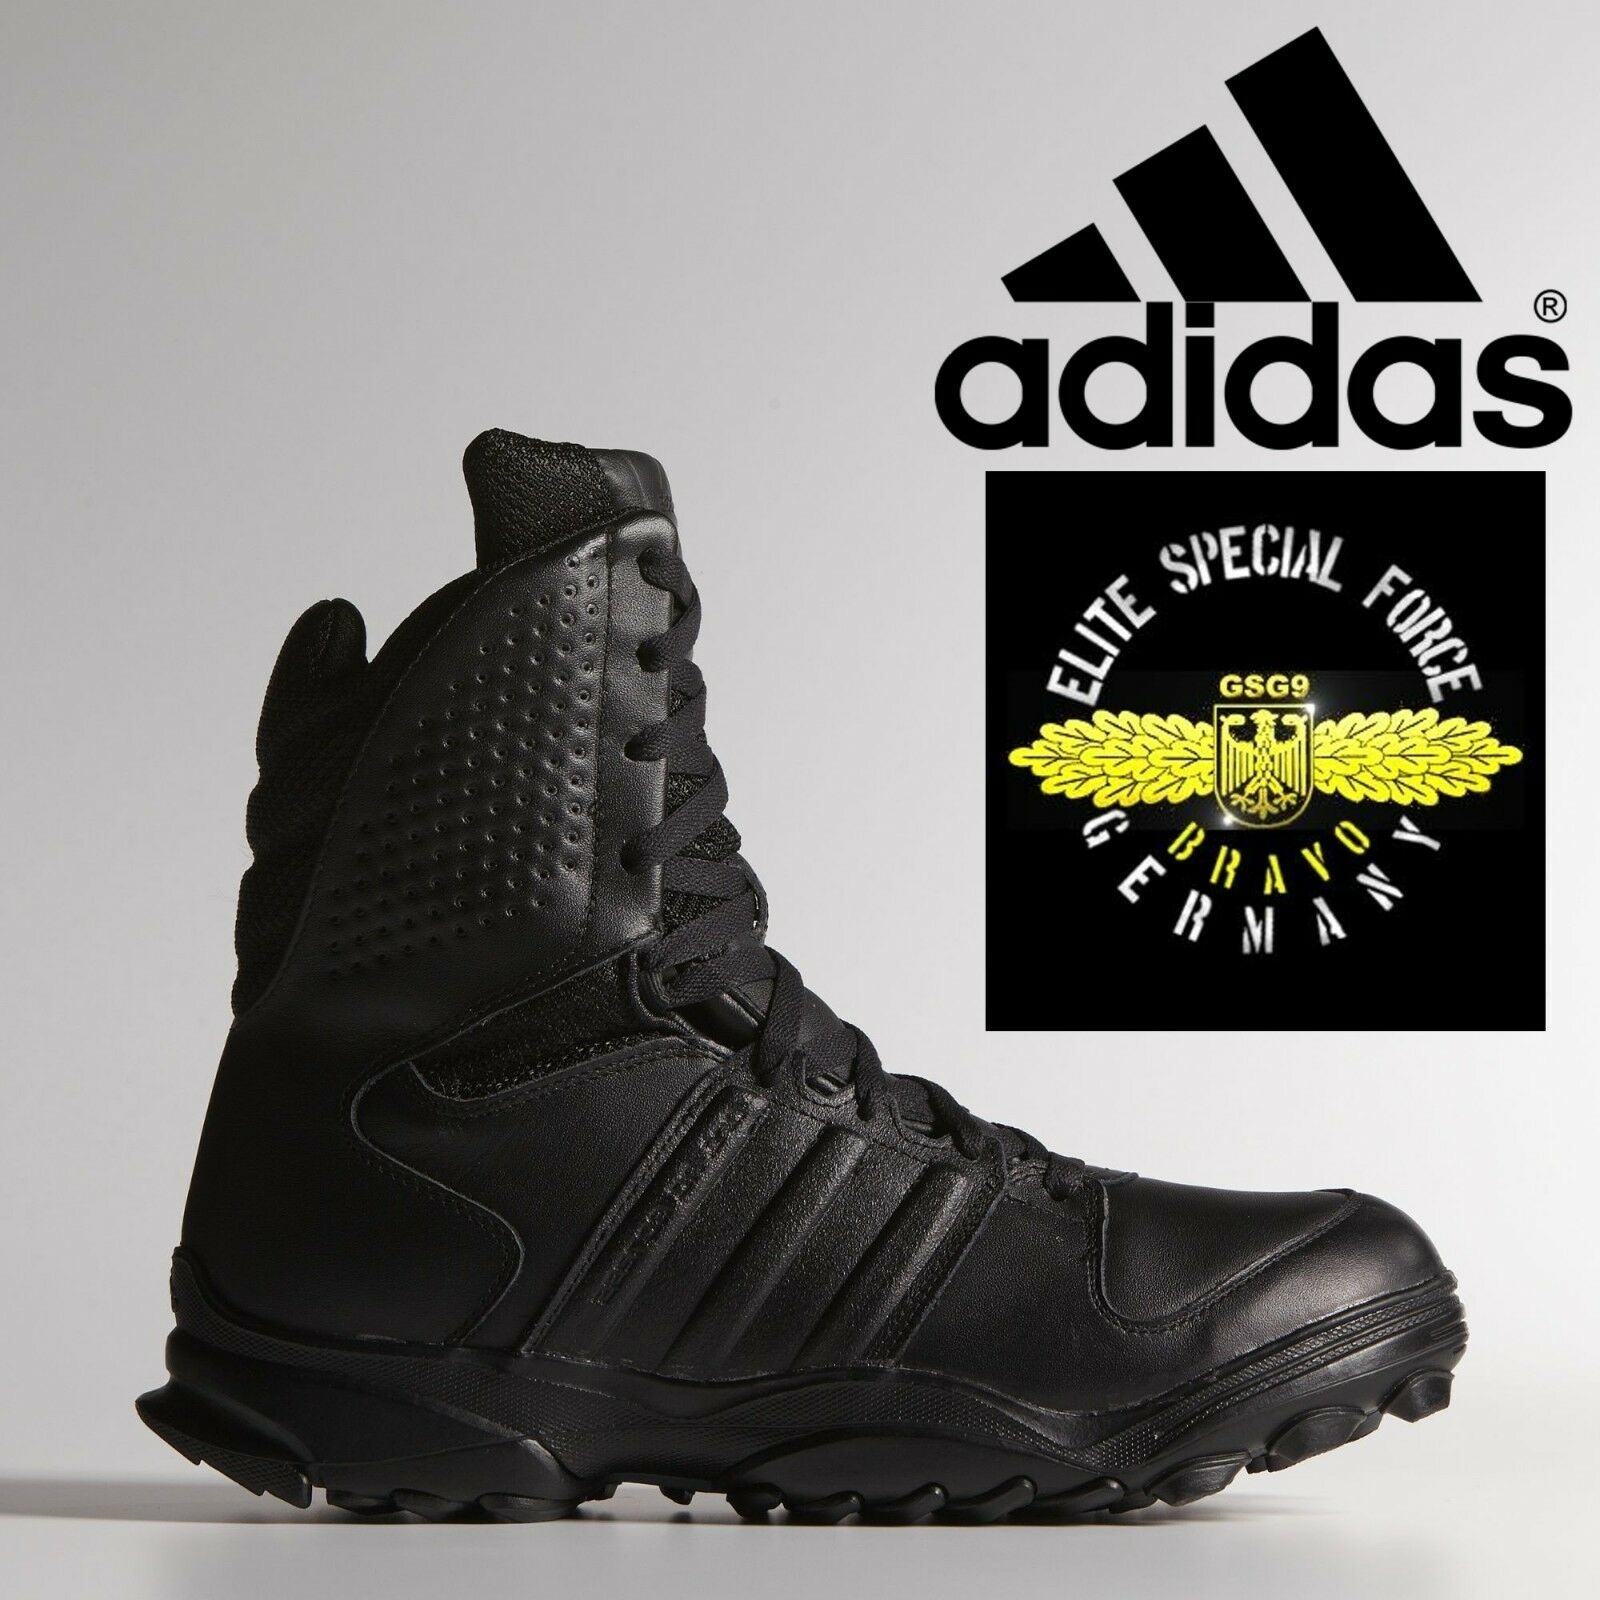 ab998a955ce Details about adidas GSG 9.2 Combat Boots Military SWAT German Police Shoes  Black Leather